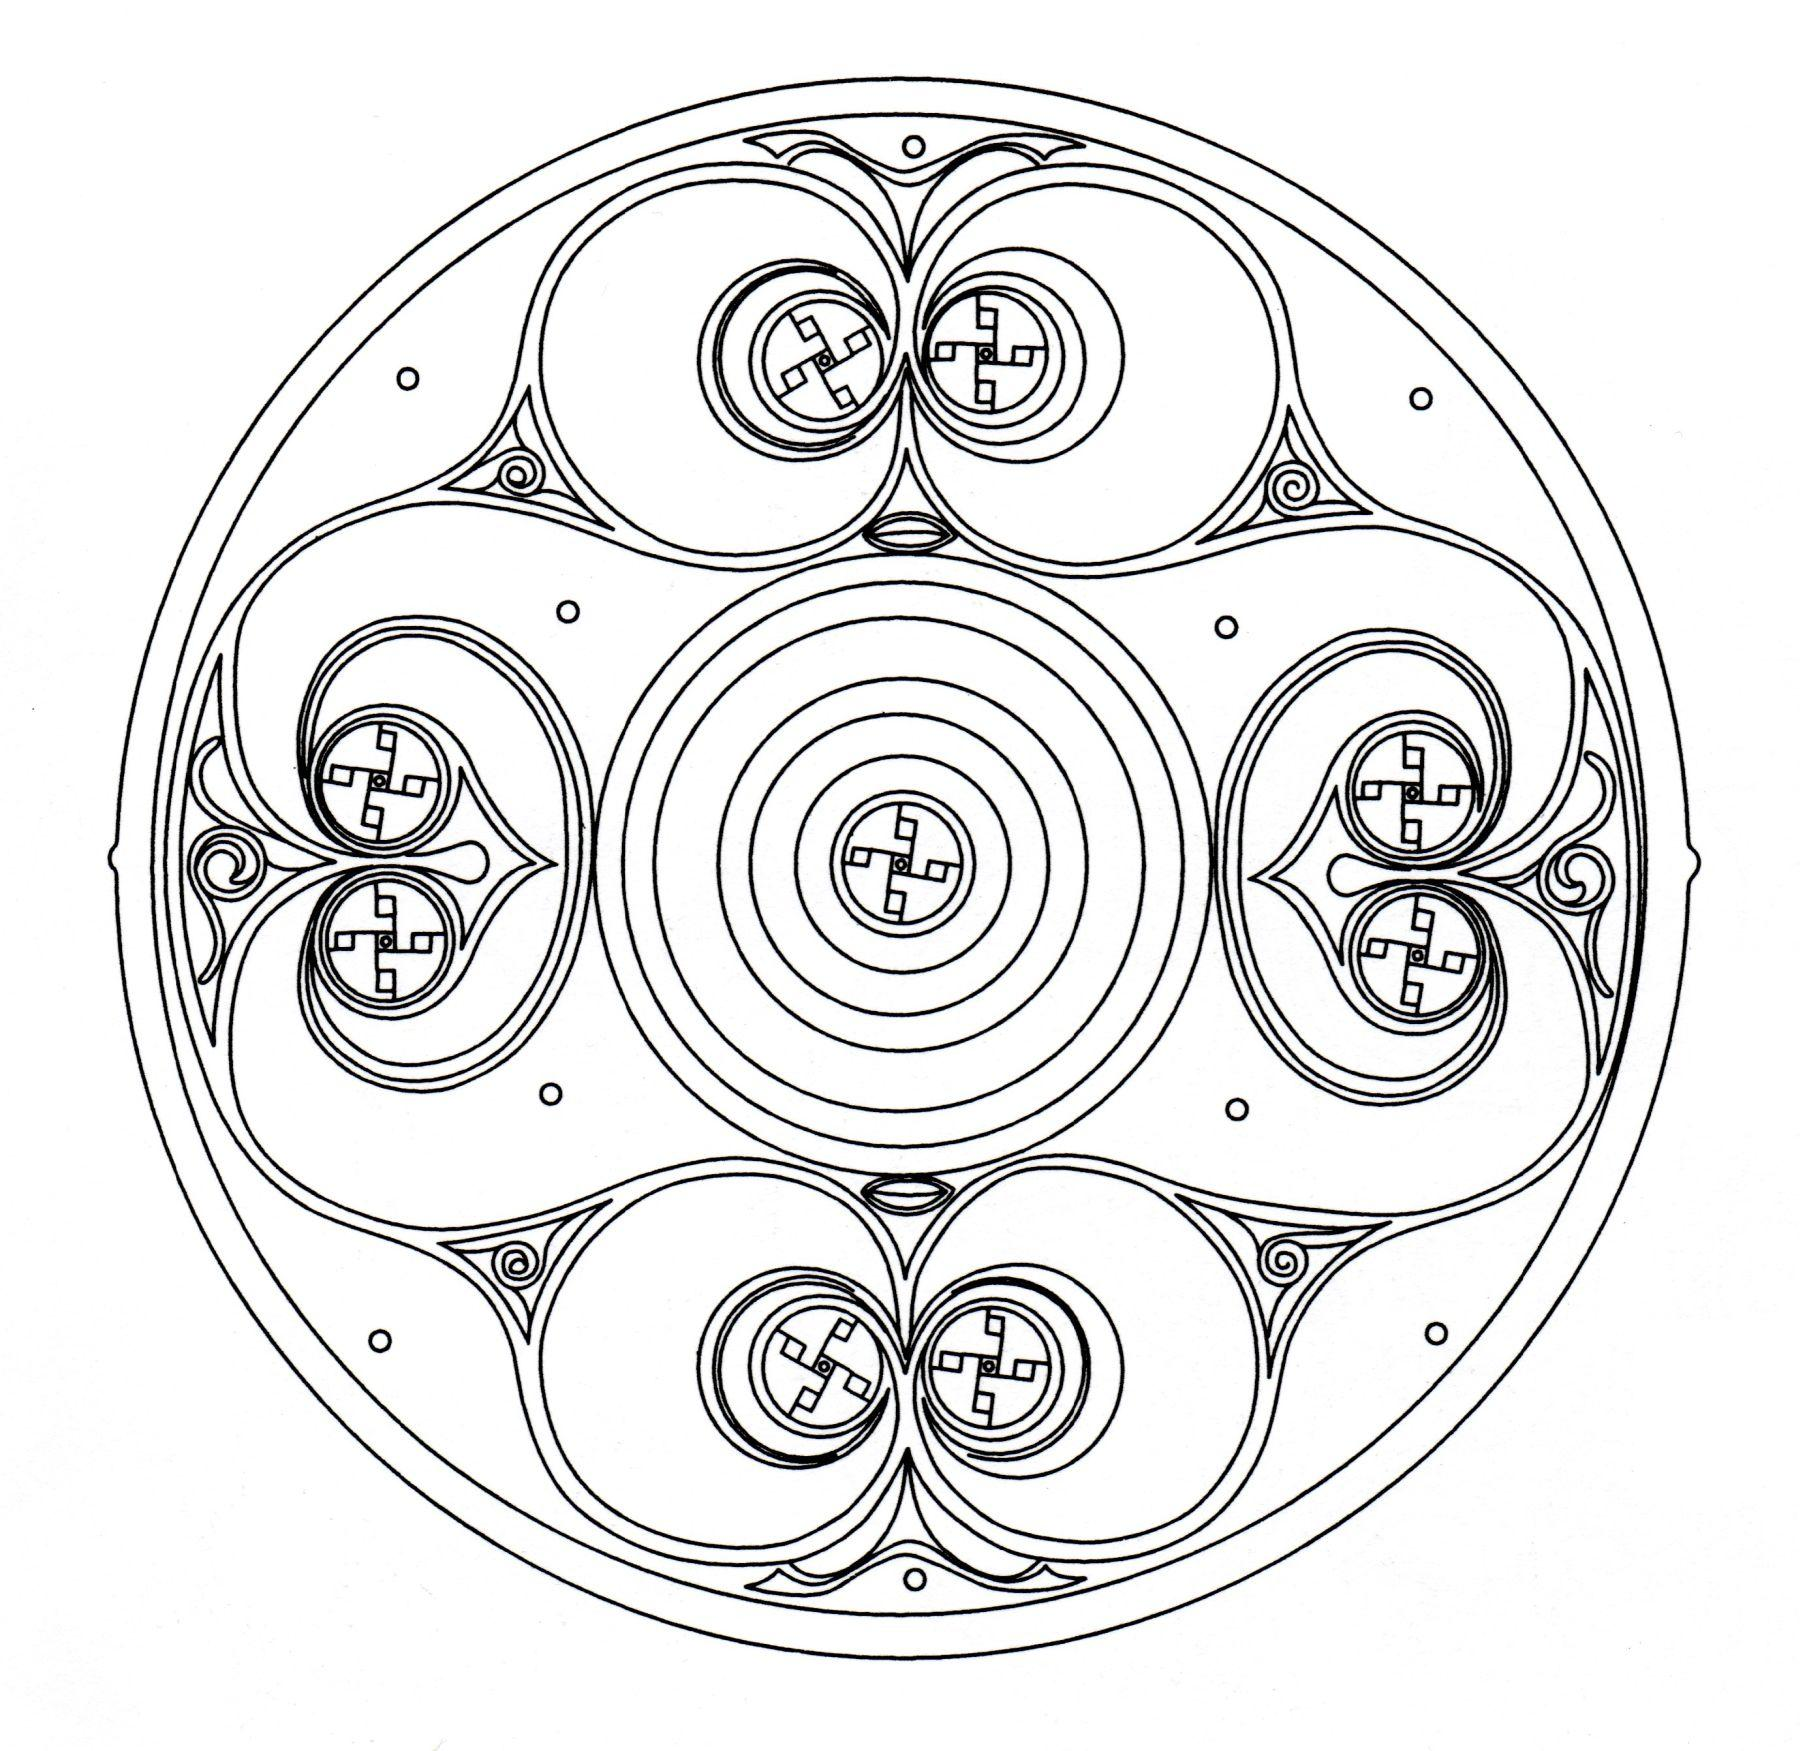 Celtic art looking like a Mandala